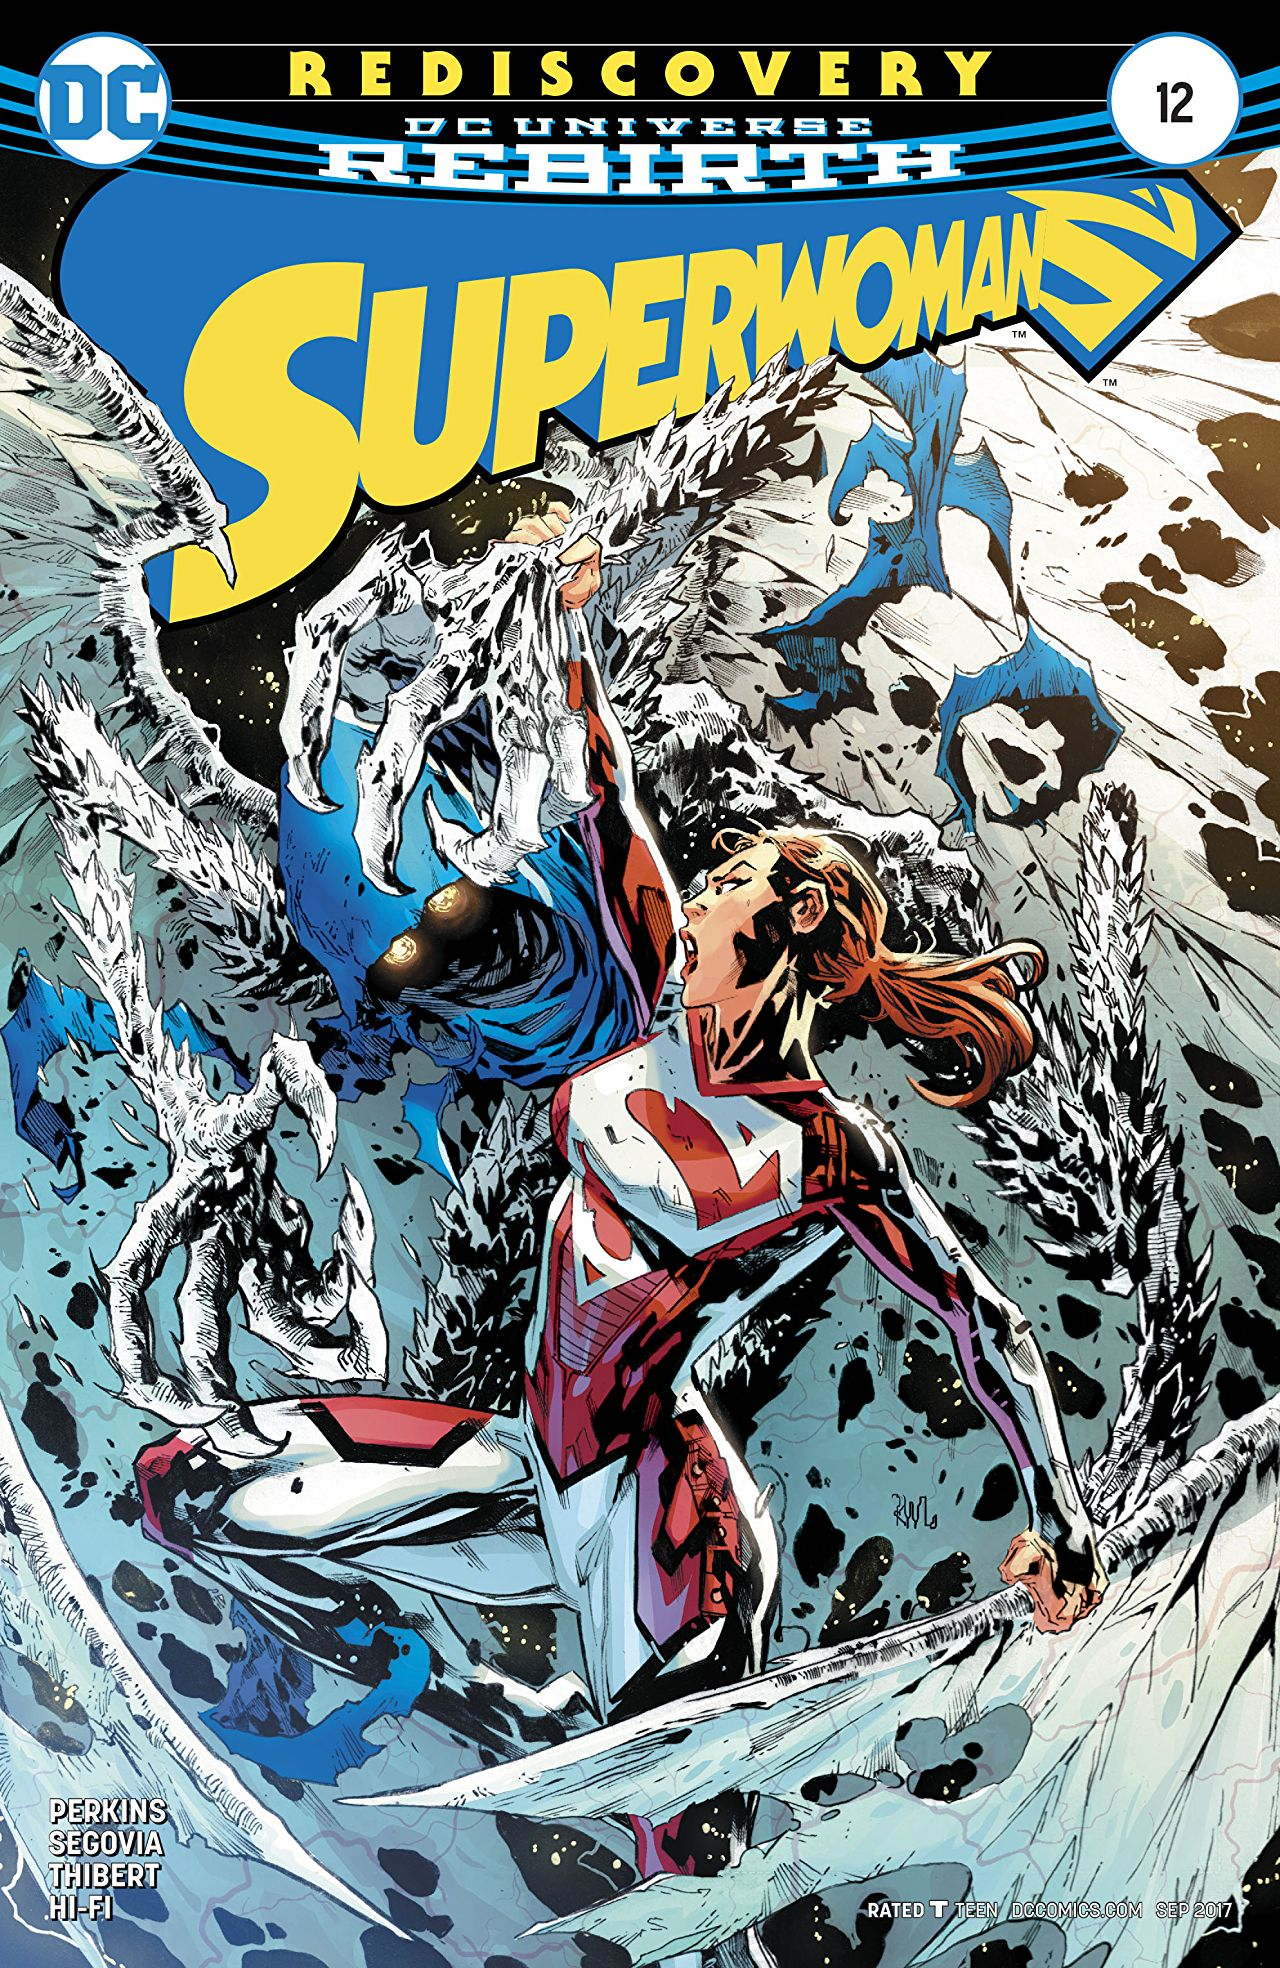 review SUPERWOMAN #12